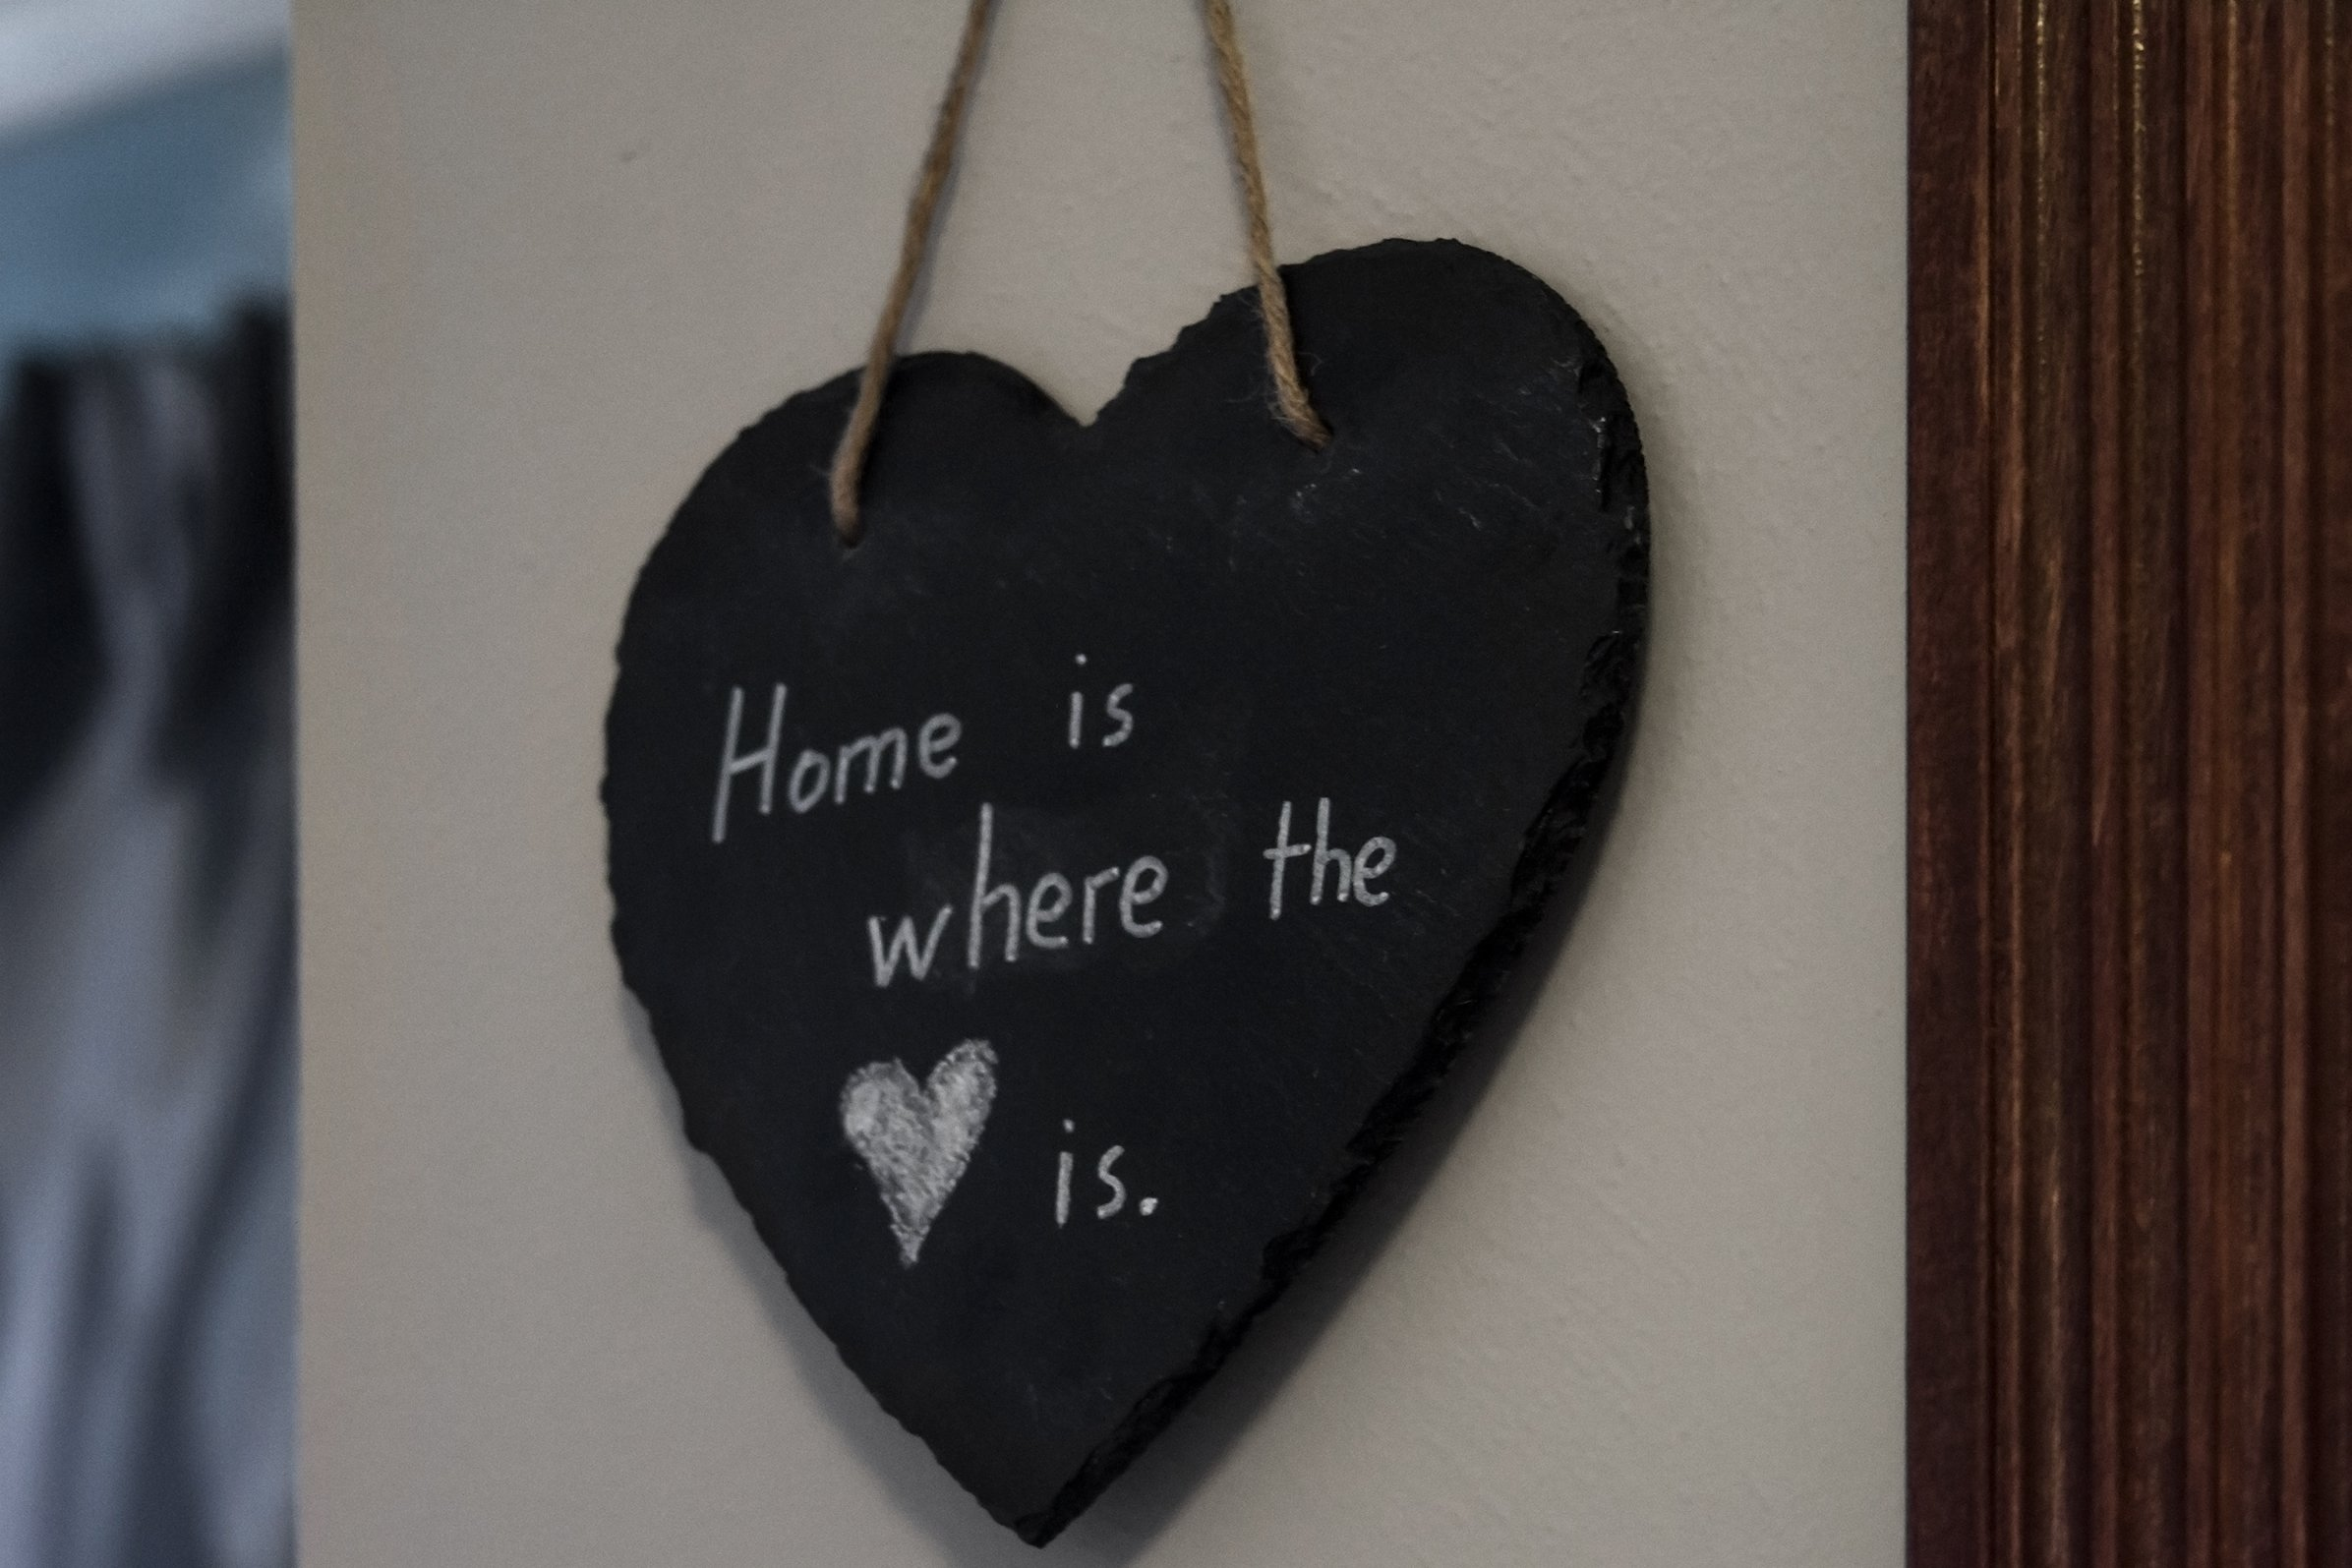 FRESHeTECH Slate Heart Kitchen Hanging Chalkboard - Great for Writing Morning Notes with Chalk 7 1/2'' x 7 1/2'' x 1/2'' Decorate and Design with June and May